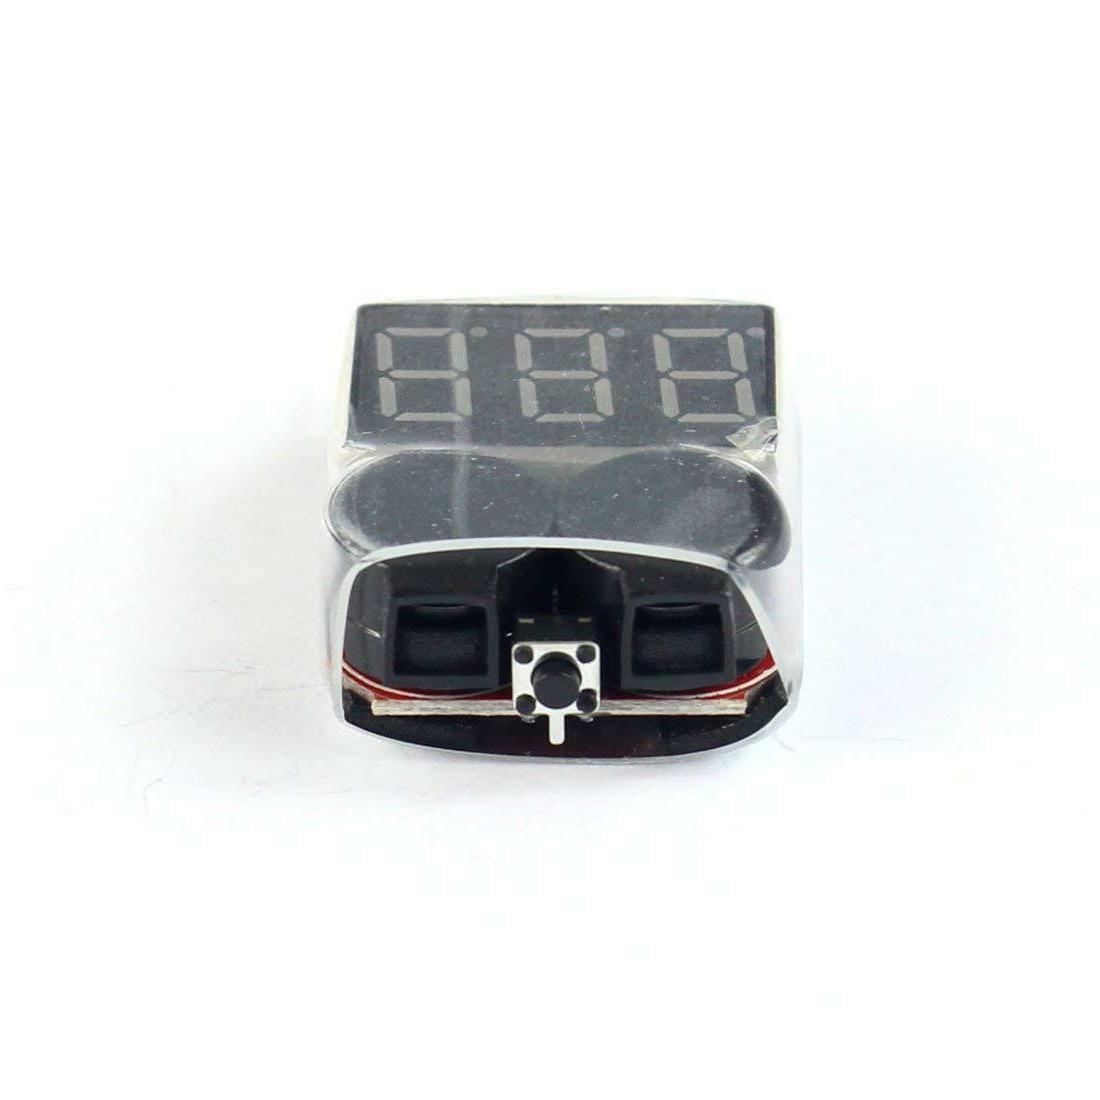 RC Lipo Low Voltage Indicator Tester